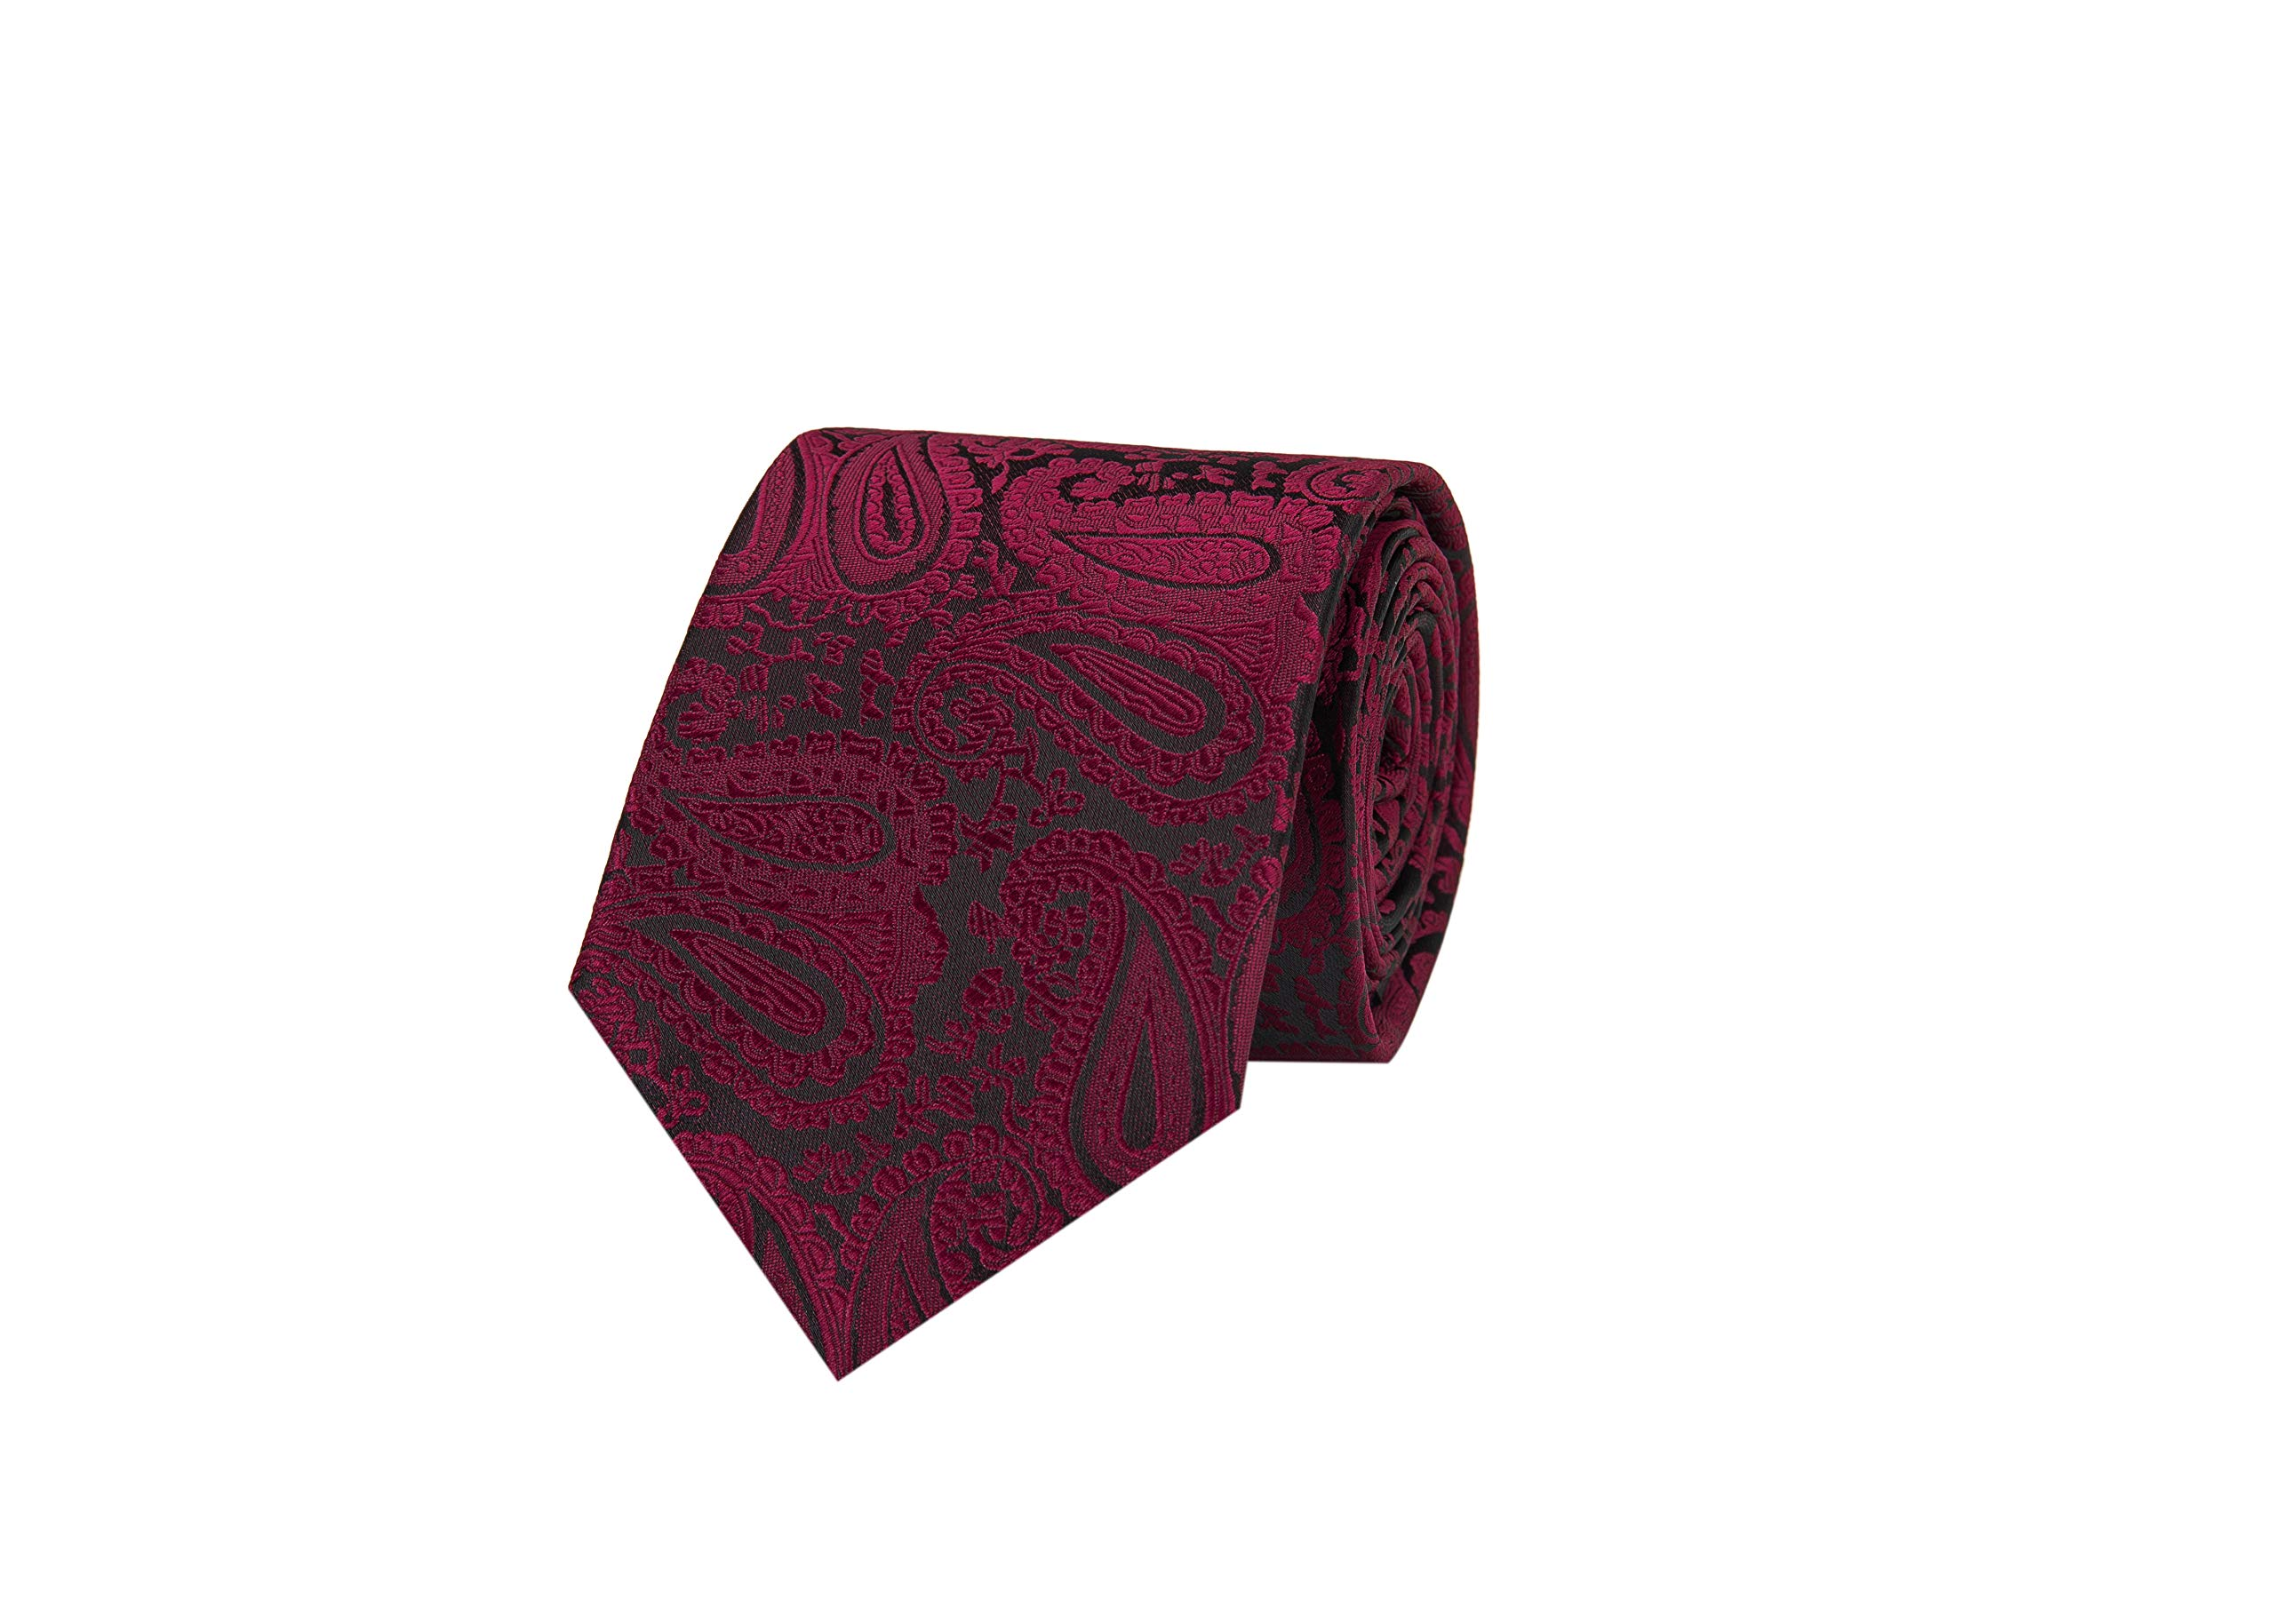 Espiaye Apparel Mens Luxury Italian Tie and Cuff link Necktie Set Great Gift